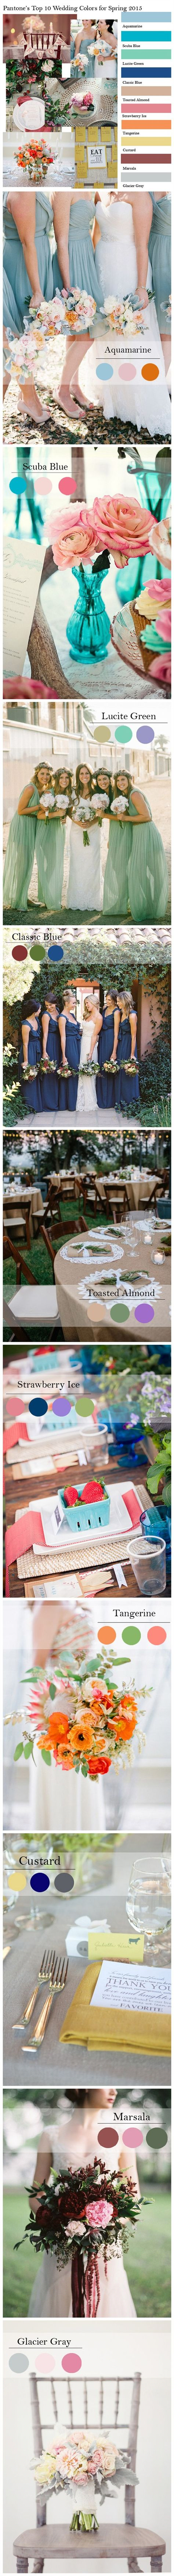 Pantone's Top 10 Fashion Colors for Spring Wedding Color Trends 2015 #tulleandchantilly